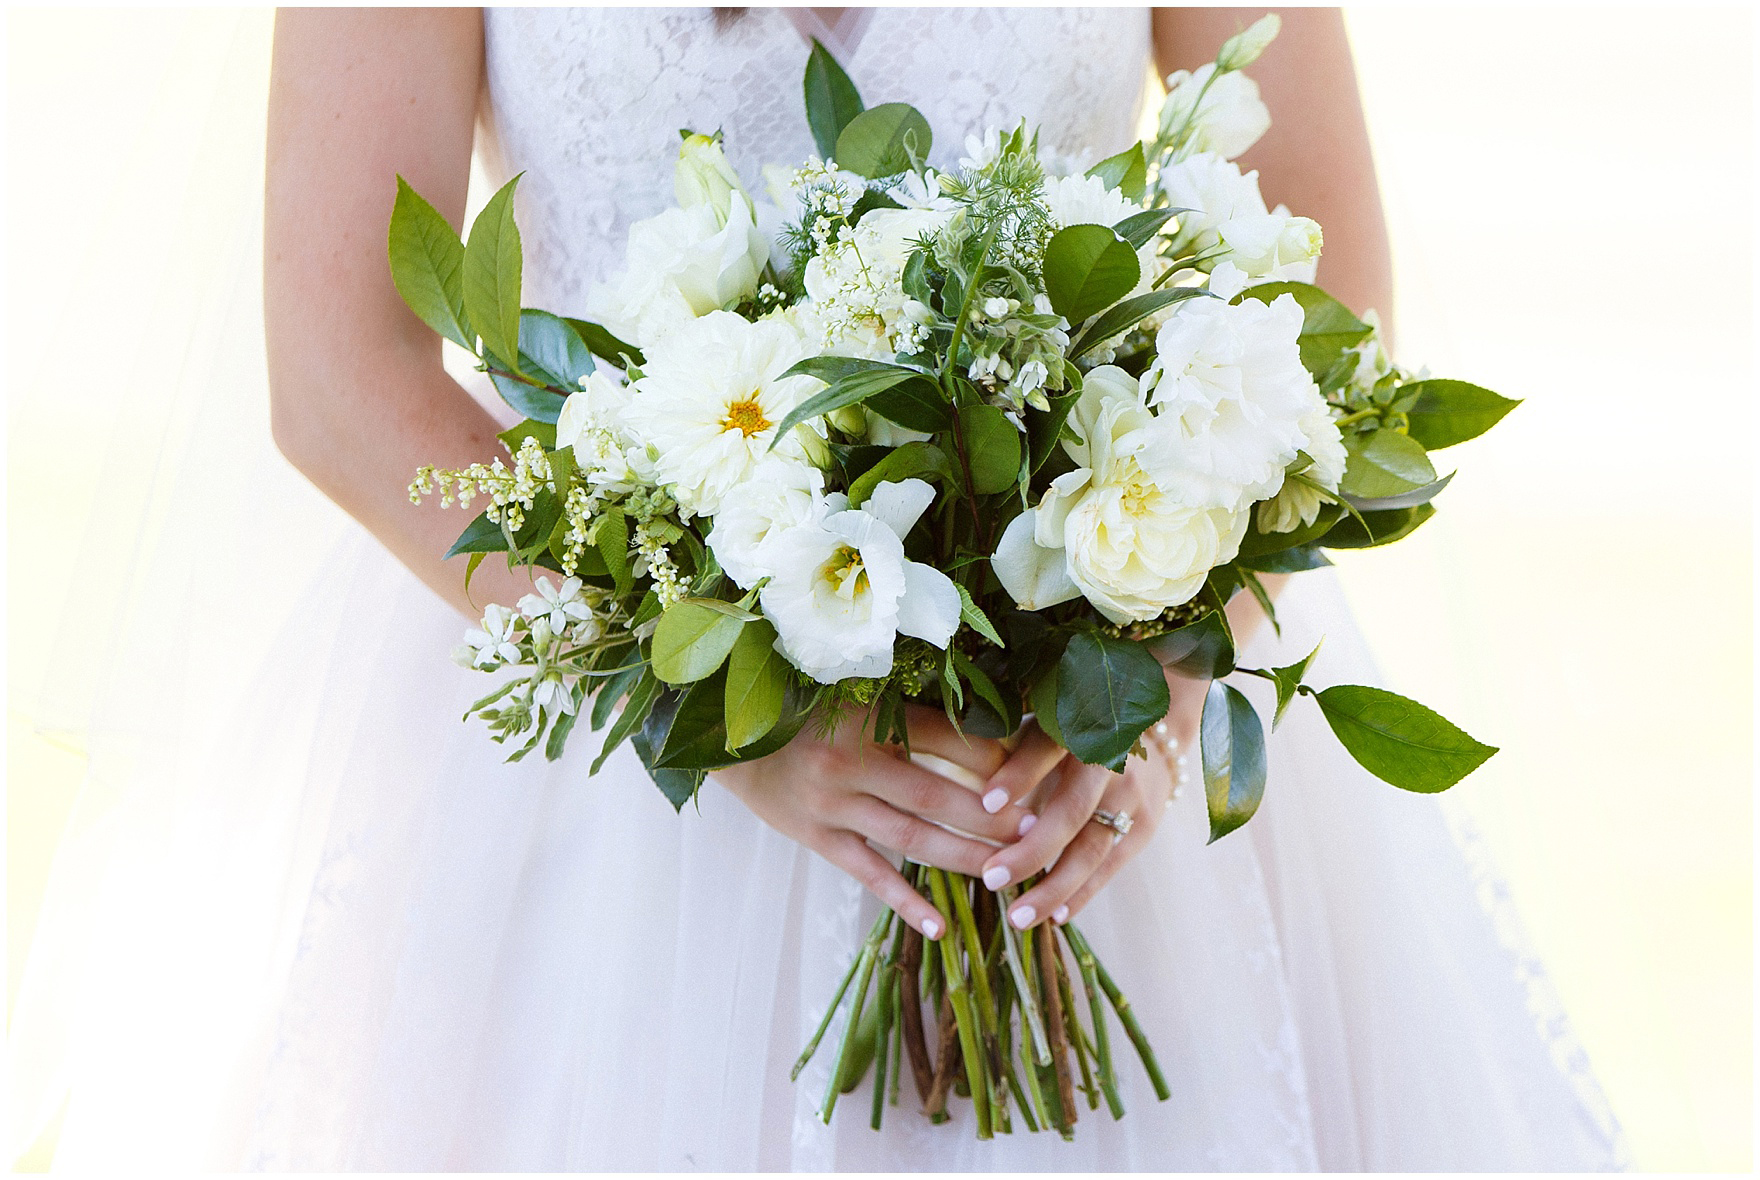 Detail of a bridal bouquet by Flowers for Dreams during a Butterfield Country Club wedding.